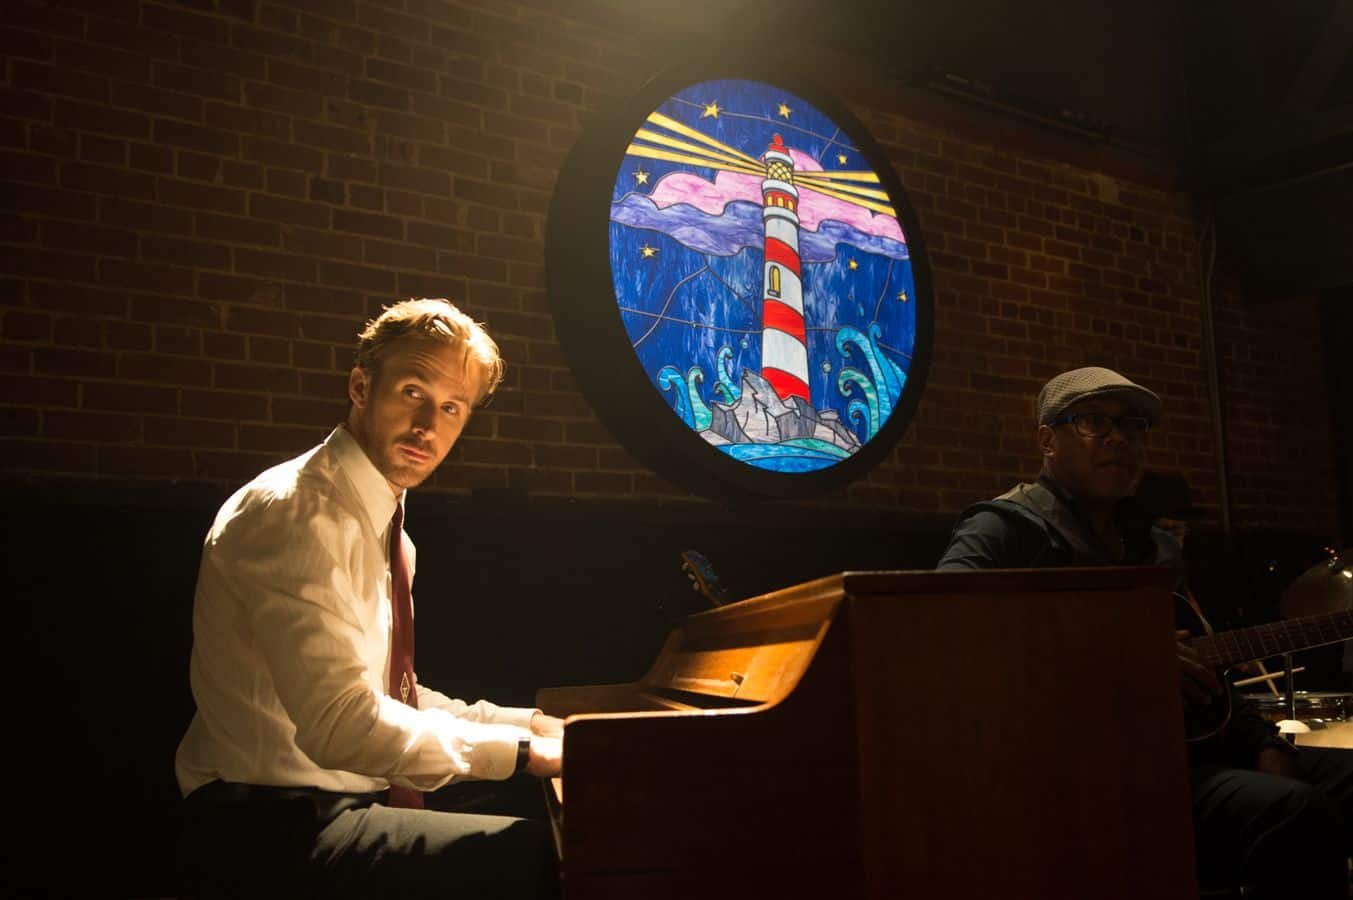 La La Land soundtrack, play the piano like Ryan Gosling